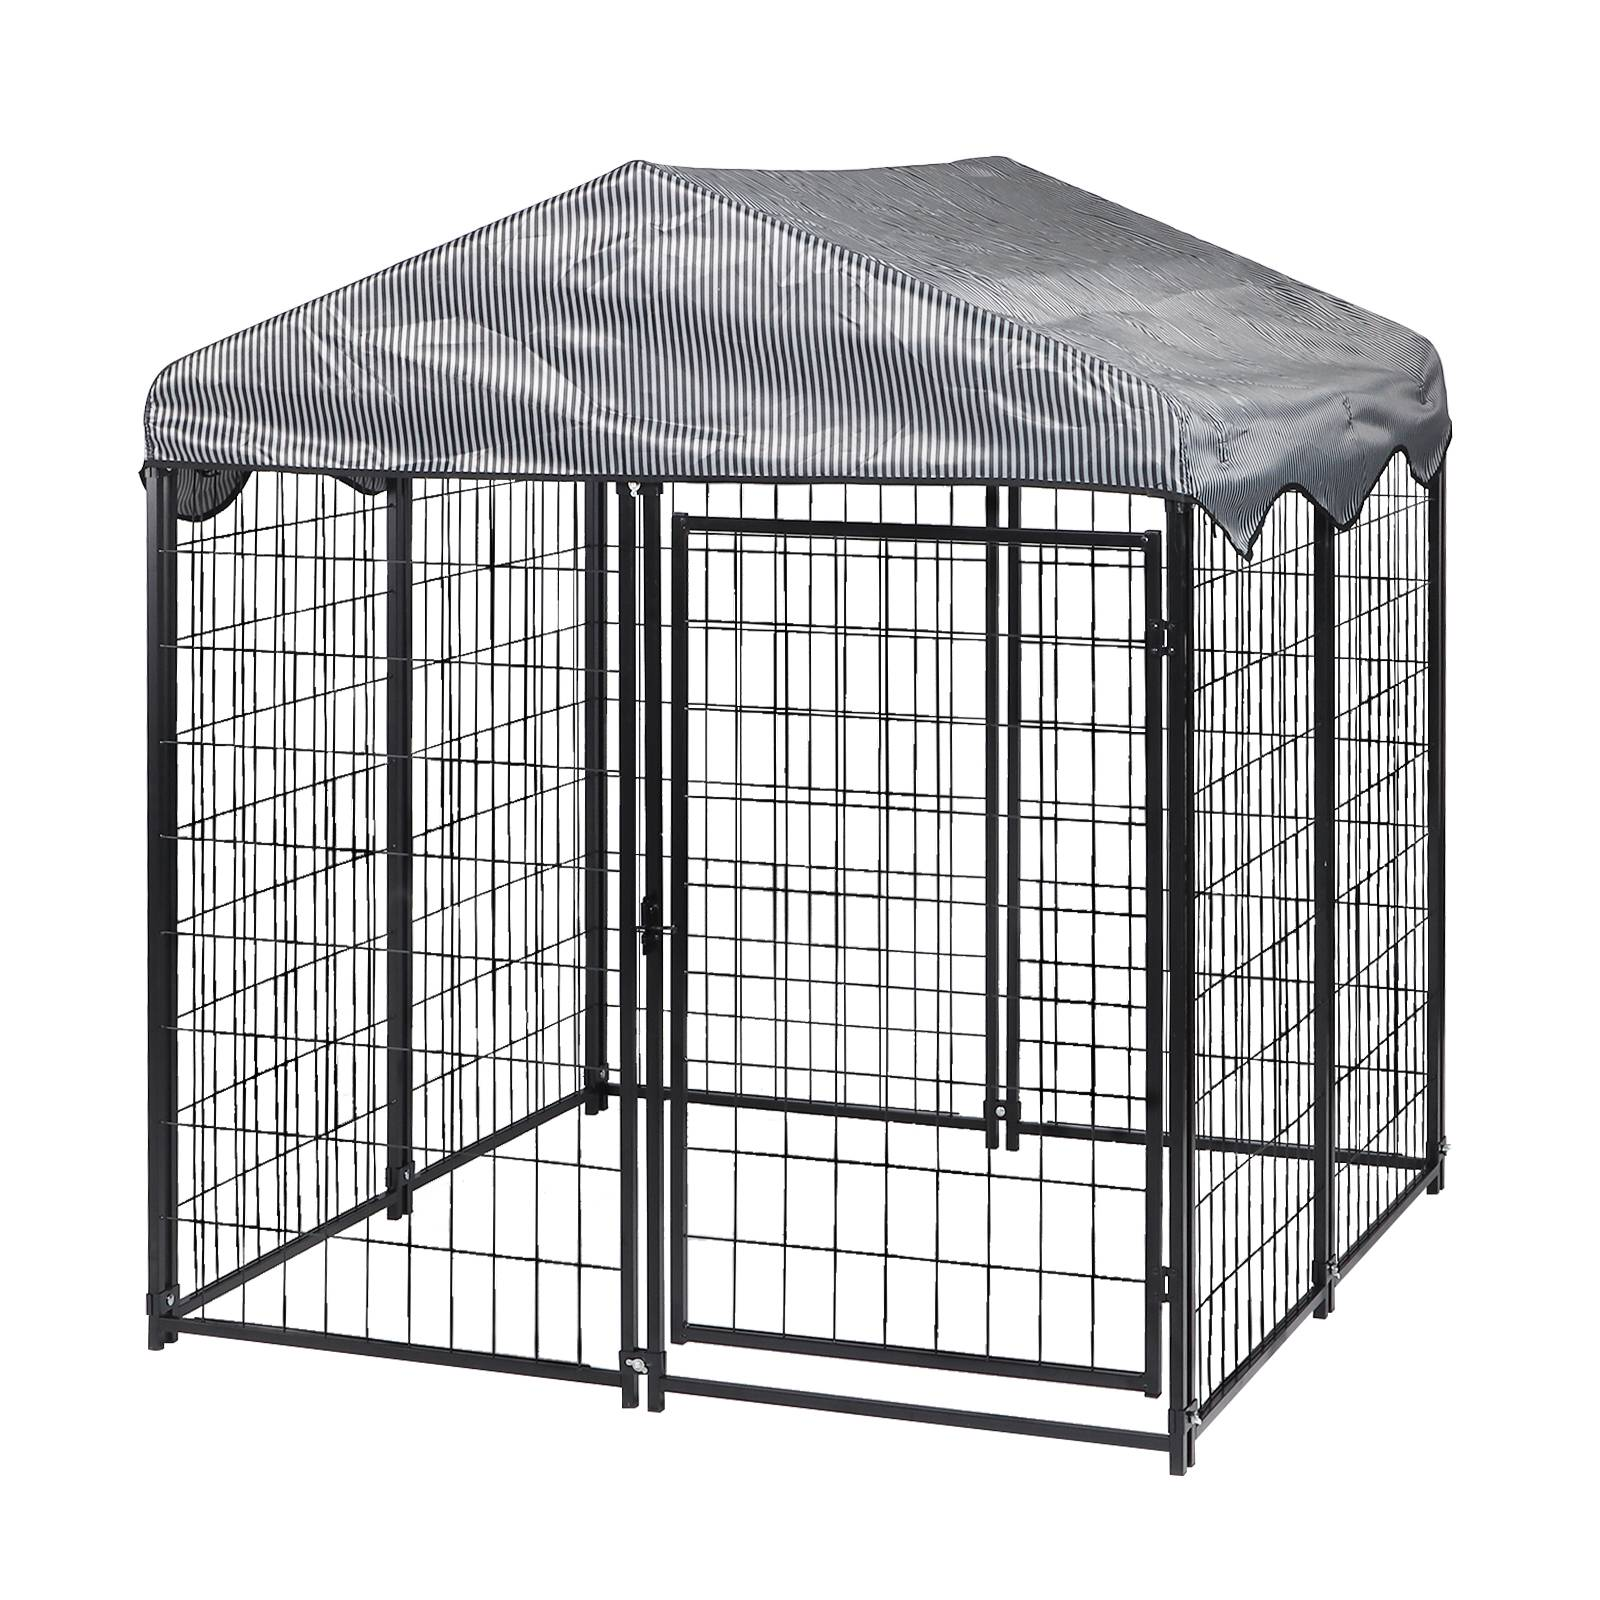 tooca 4'x4.2'x4.5'Outdoor Metal Dog Kennel for Large/Medium/Small Animal Run with UV Protective Cover & Invisible Lock